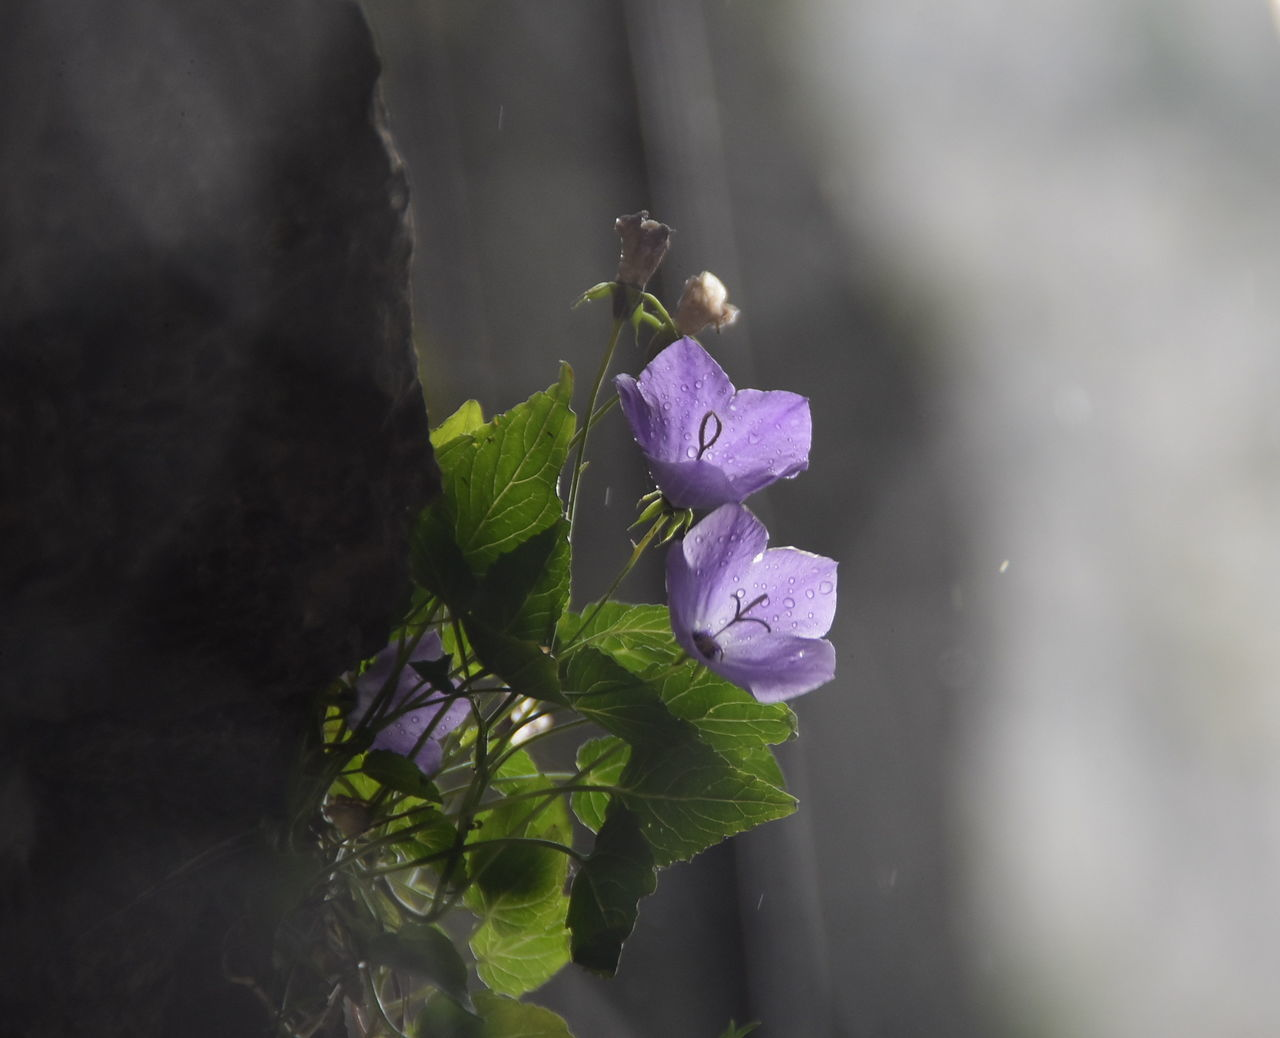 flower, fragility, beauty in nature, petal, nature, growth, freshness, purple, plant, day, flower head, close-up, leaf, outdoors, no people, blooming